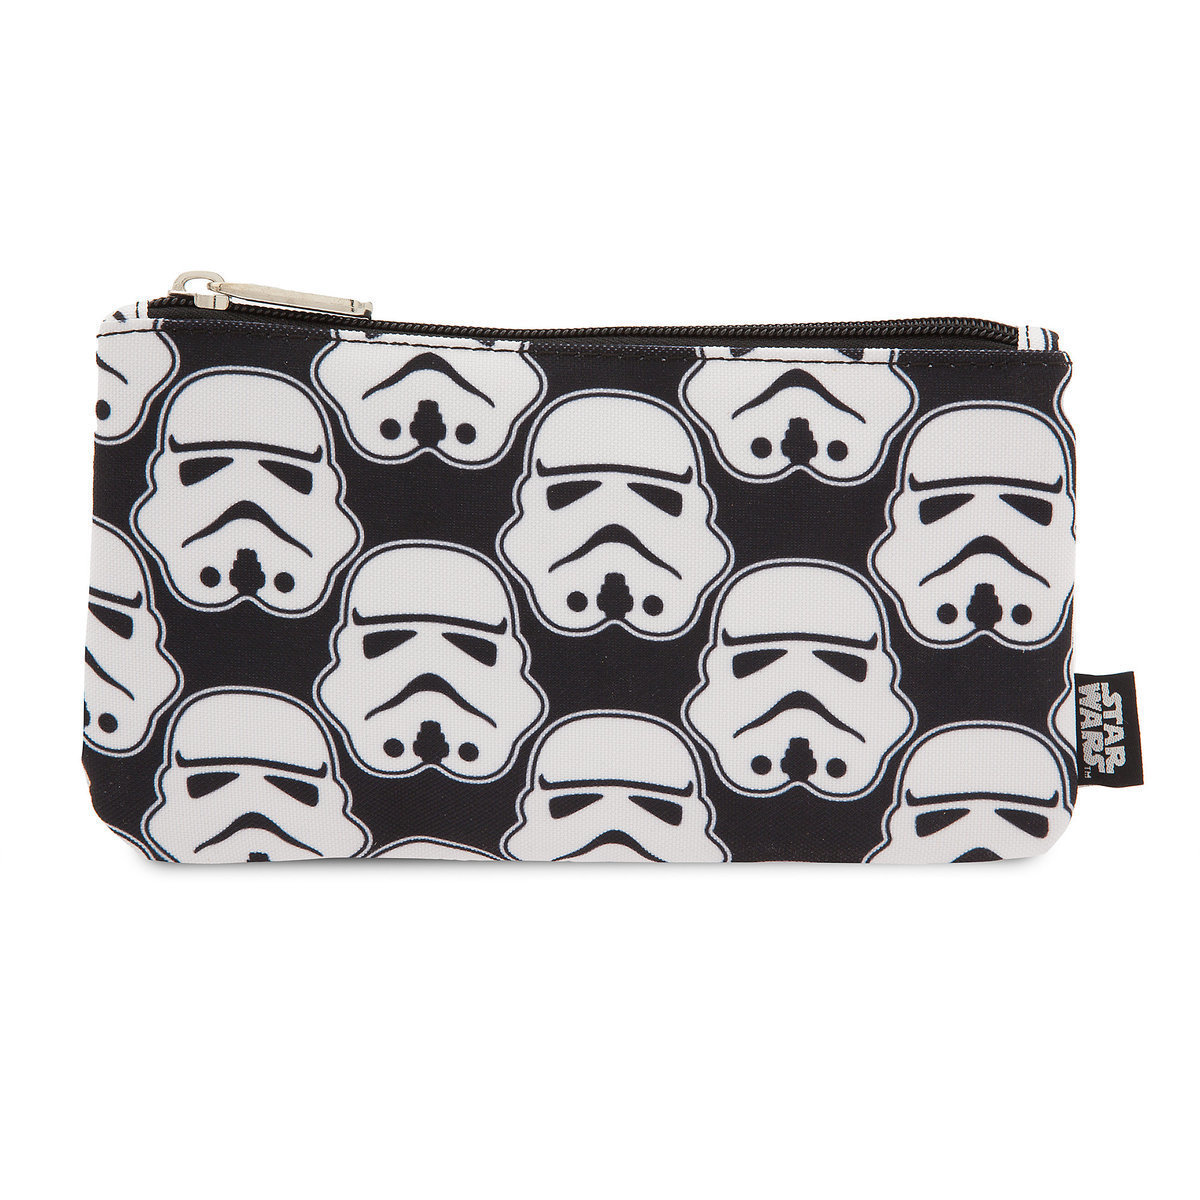 ○送料込○ スターウォーズ Stormtrooper Pencil Case by